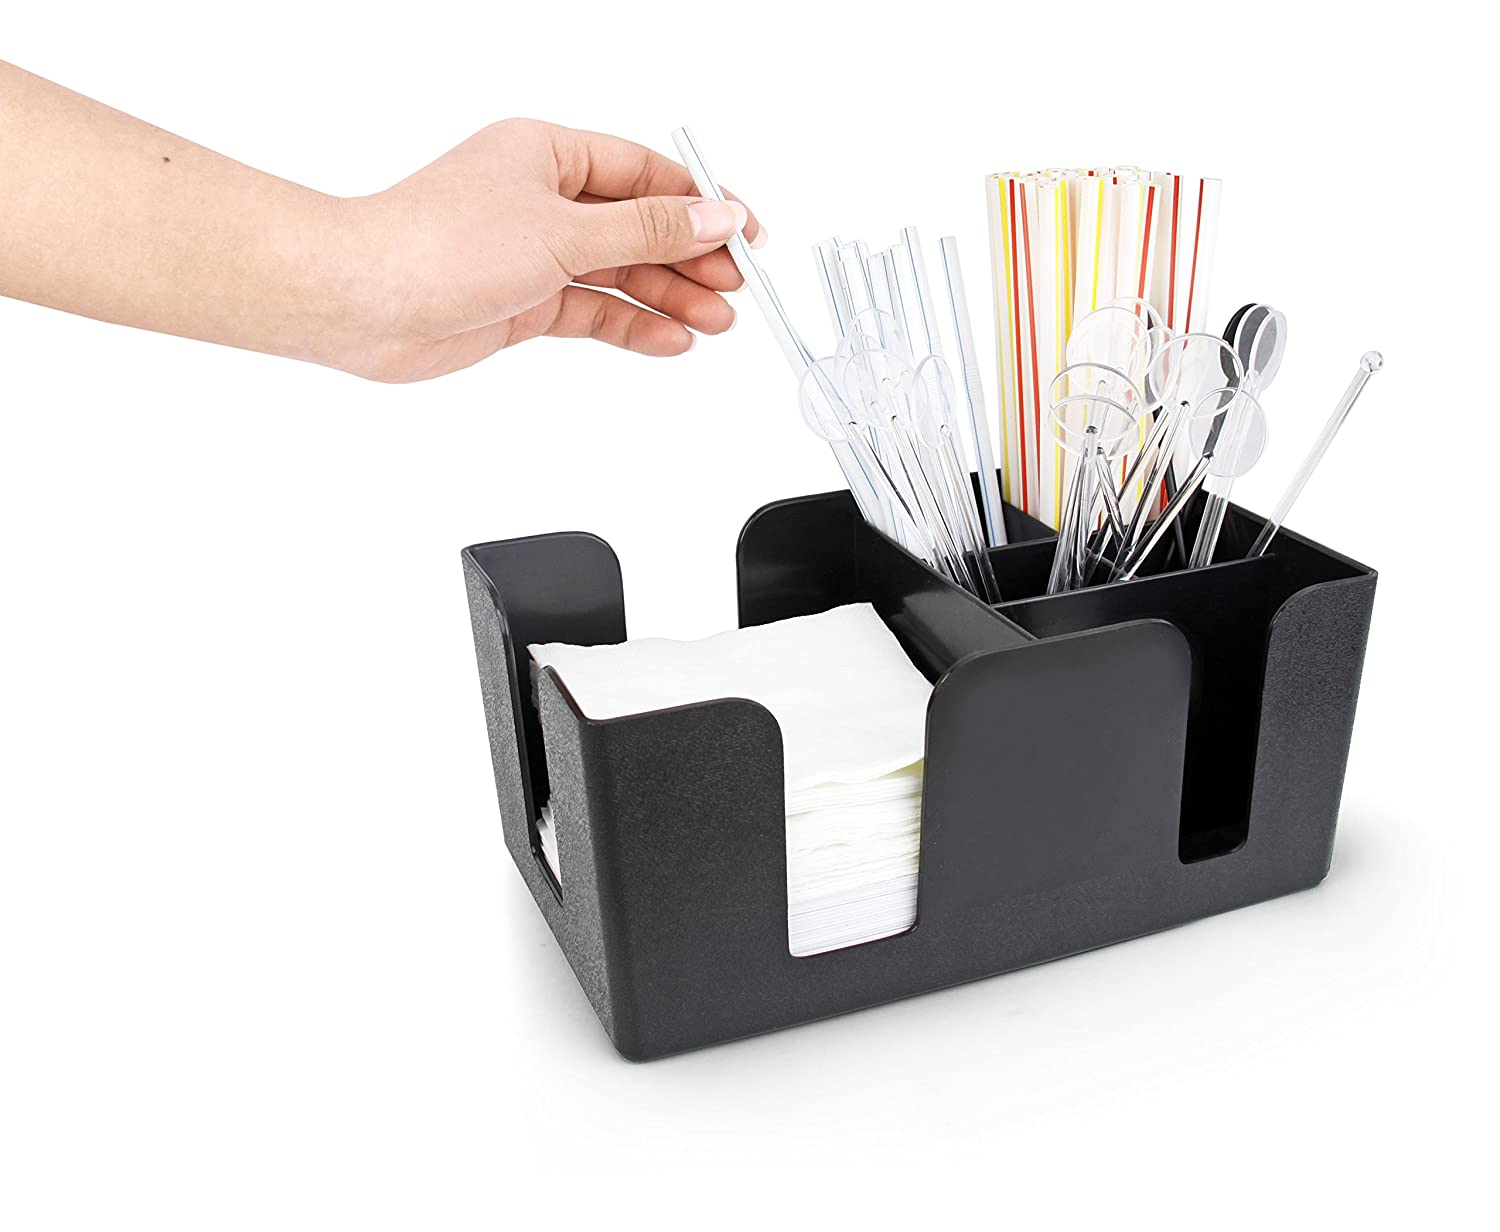 New Star 48001 Plastic Bar Caddy Organizer with 6 Compartments, Black